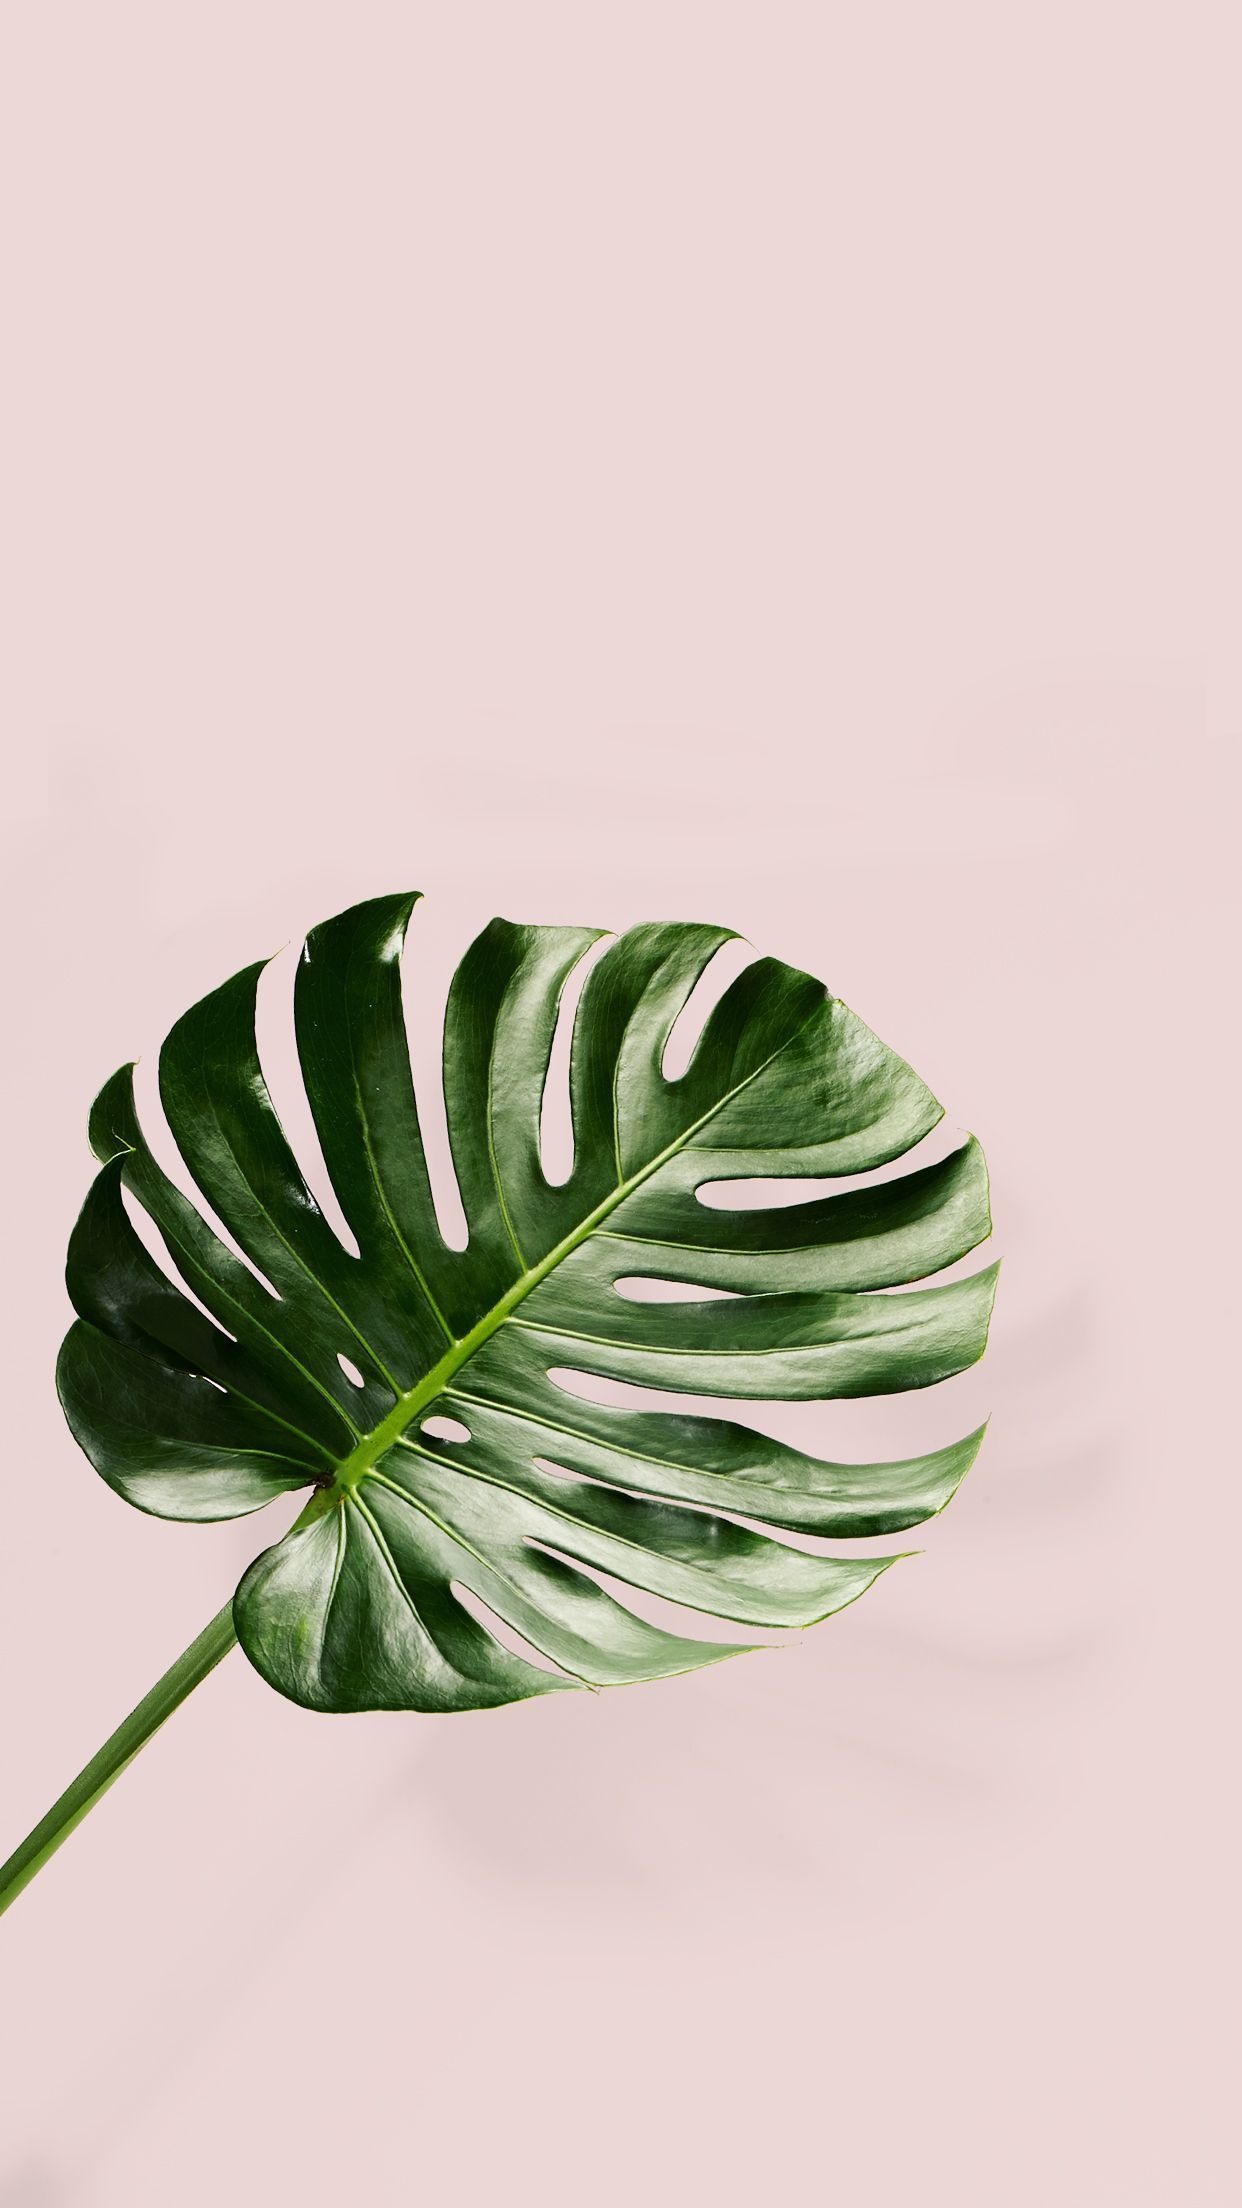 INSPIRATION 16 / PINK AND GREEN Plant wallpaper, Palm